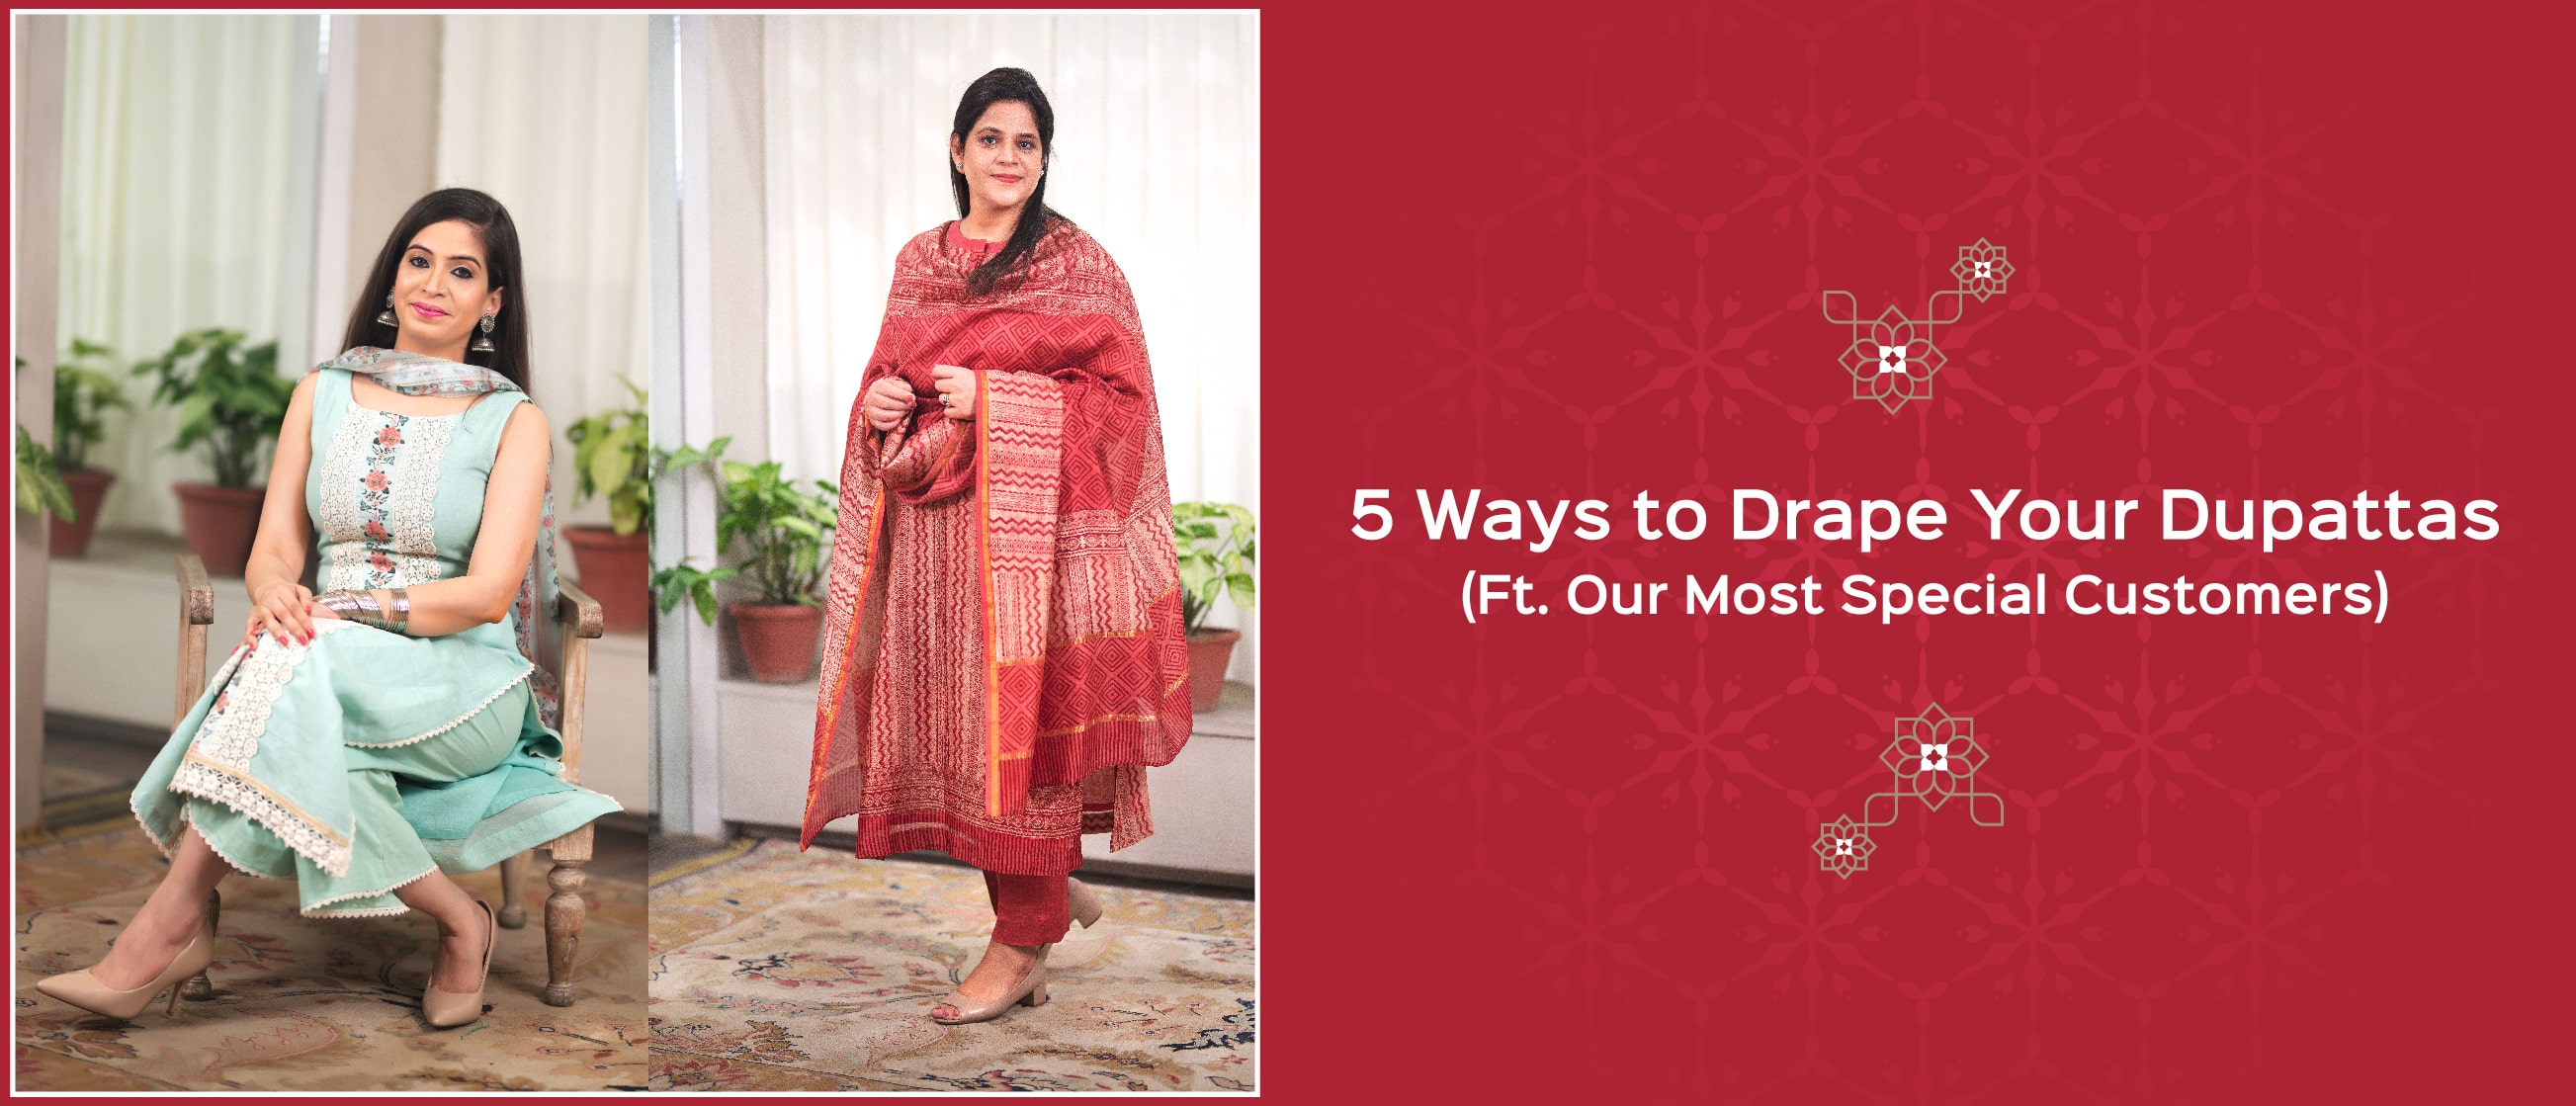 5 Ways to Drape Your Dupattas (Ft. Our Most Special Customers)